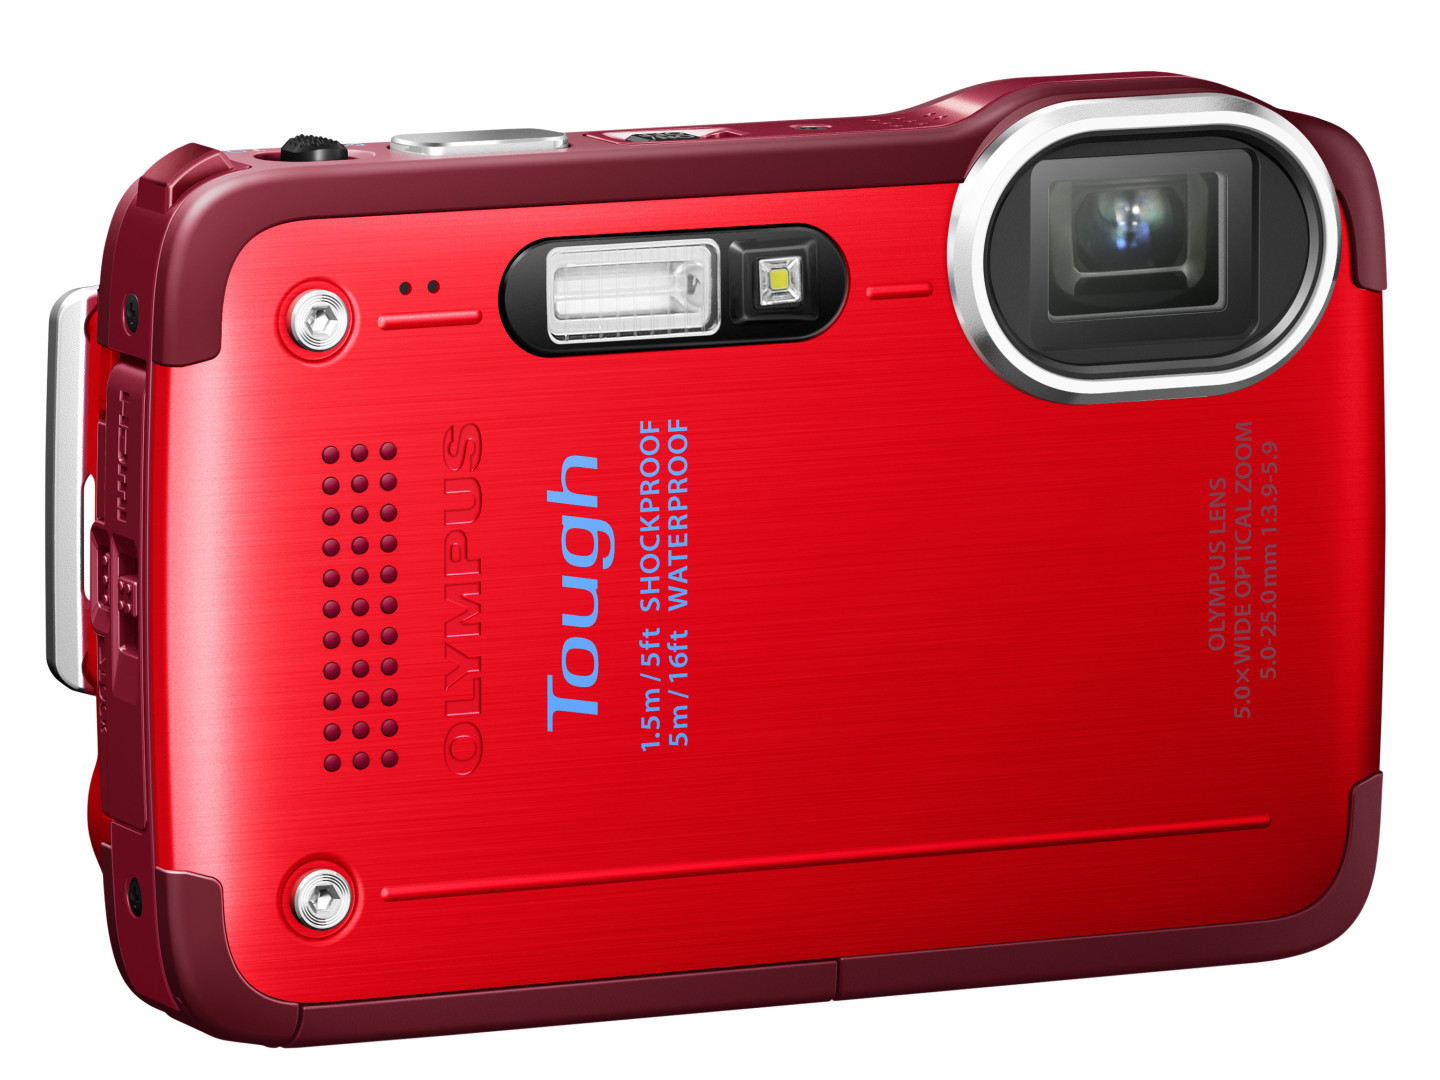 TG-630_red__Product_350_XTL